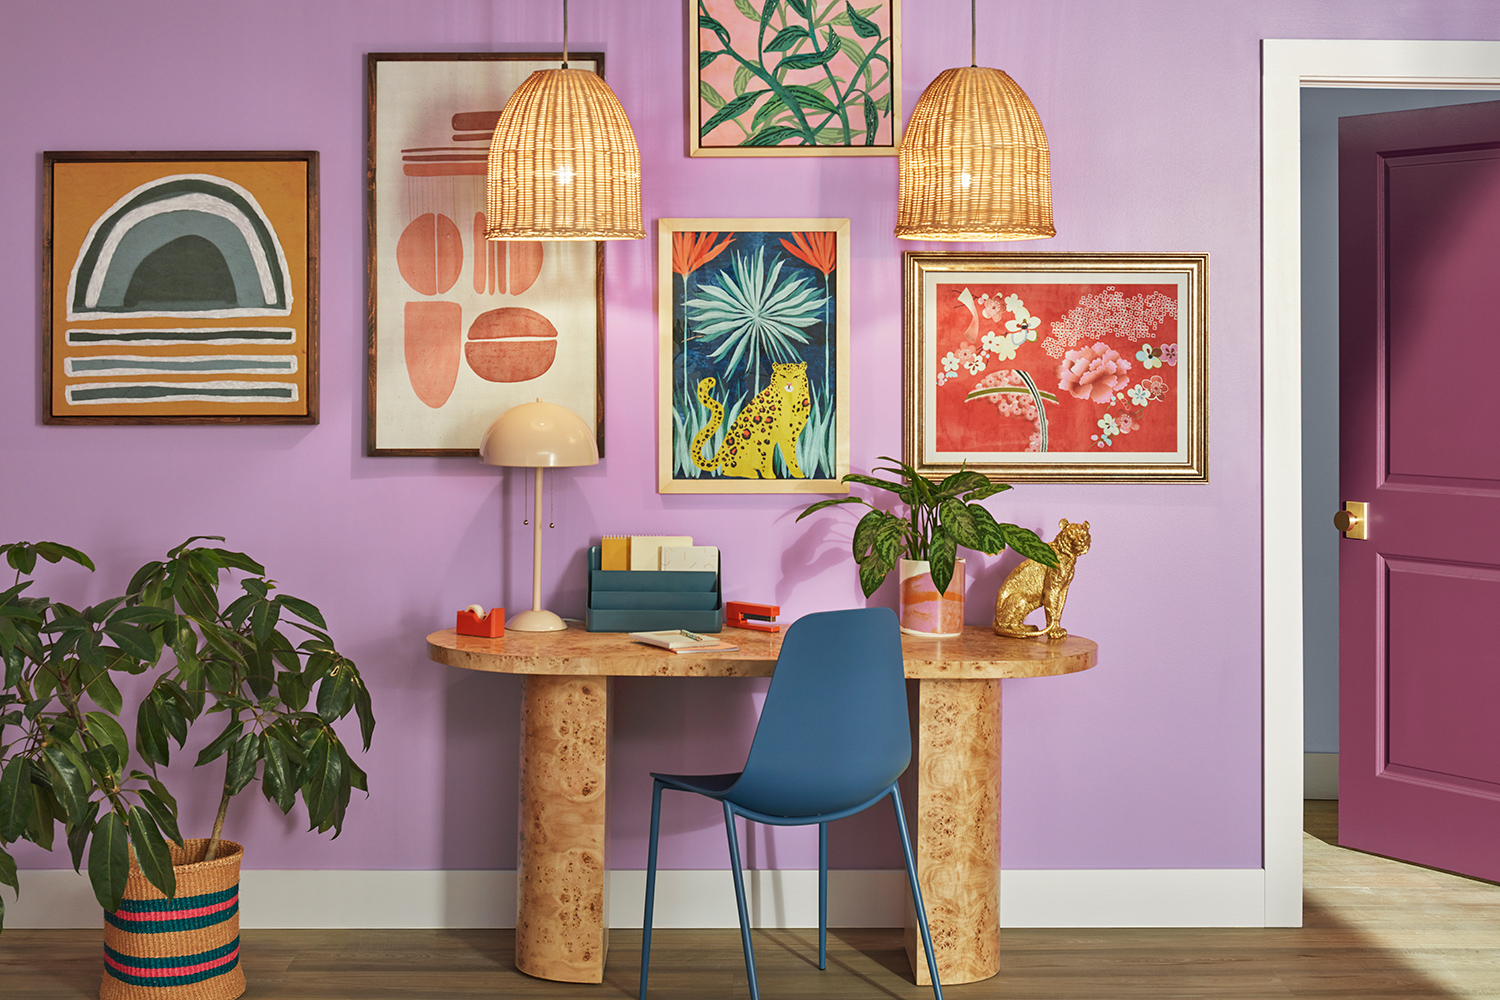 Art deco style wood desk centered on Novel Lilac SW 6839 painted wall, decorated with colorful ectectic paintings accompanied by wicker light fixtures and plants.